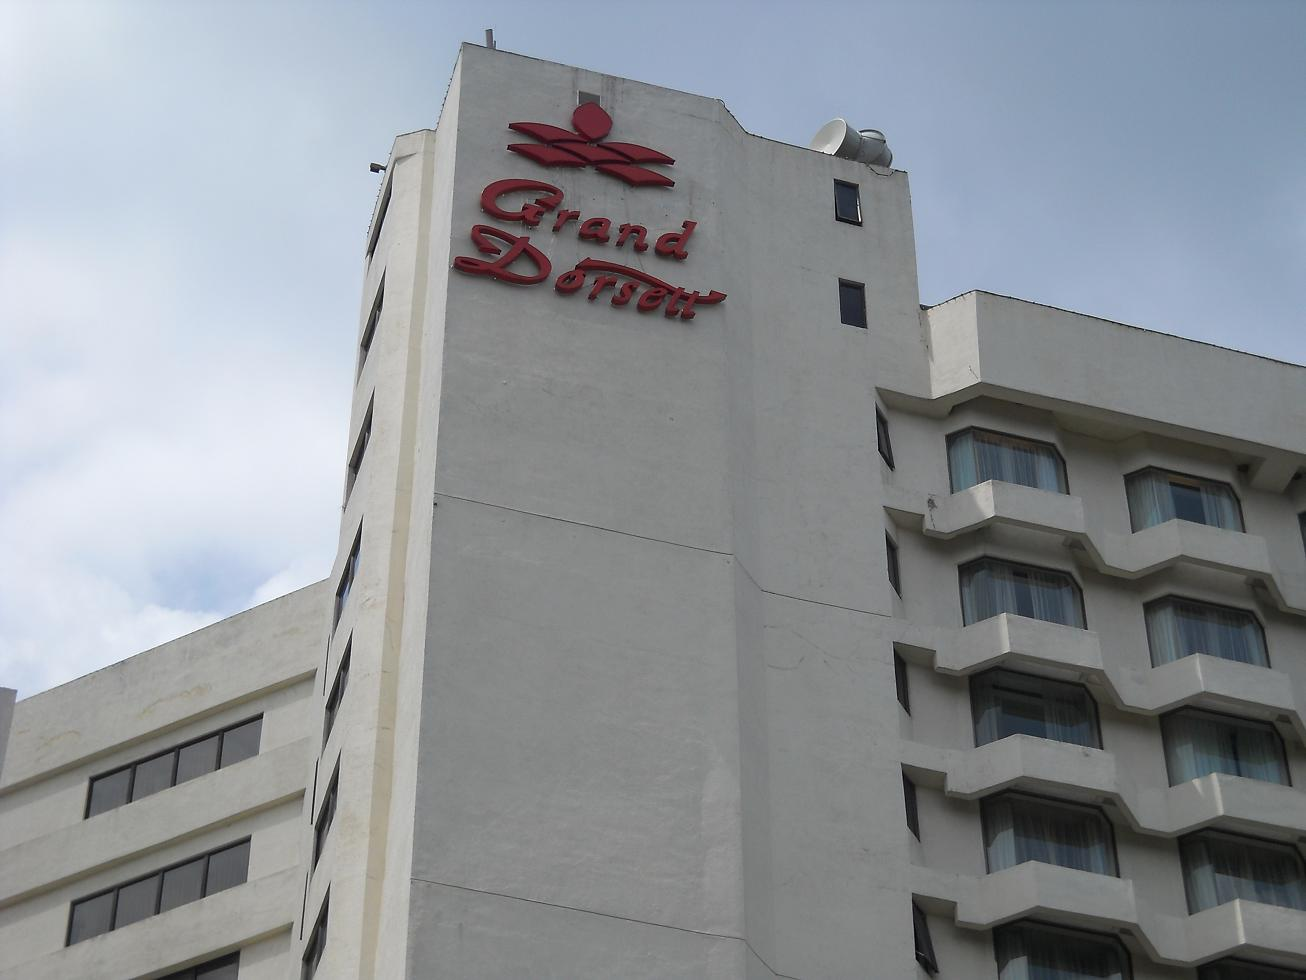 Kevin Meets The Stars Food Review Of The Grand Dorsett Subang Hotel